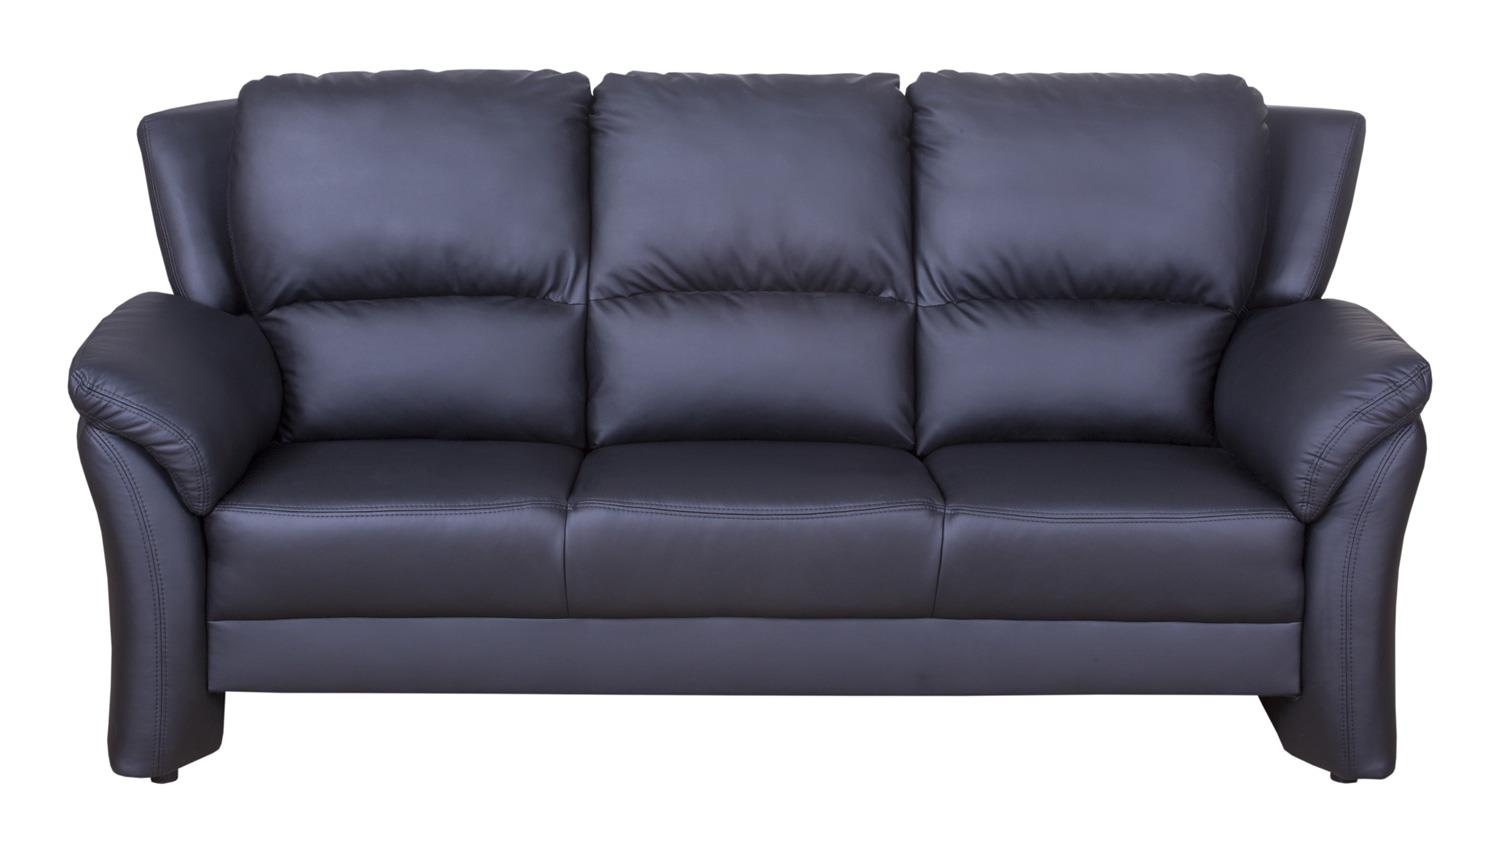 sofa 3 sitzer pisa polstersofa polsterm bel couch in schwarz 201 cm. Black Bedroom Furniture Sets. Home Design Ideas